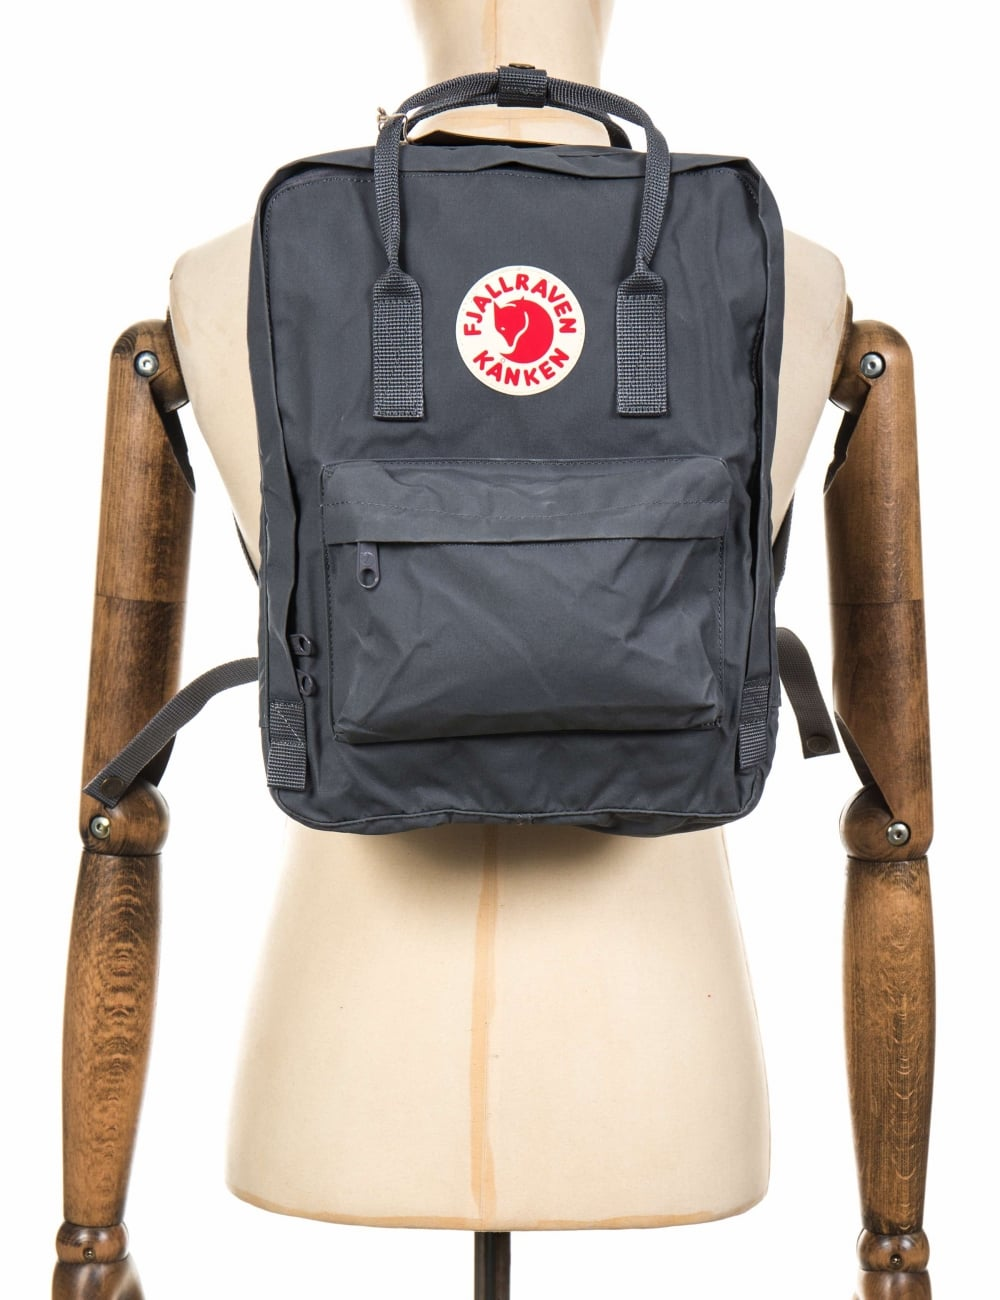 007c59f86 Fjallraven Kanken Classic Backpack - Super Grey - Accessories from ...